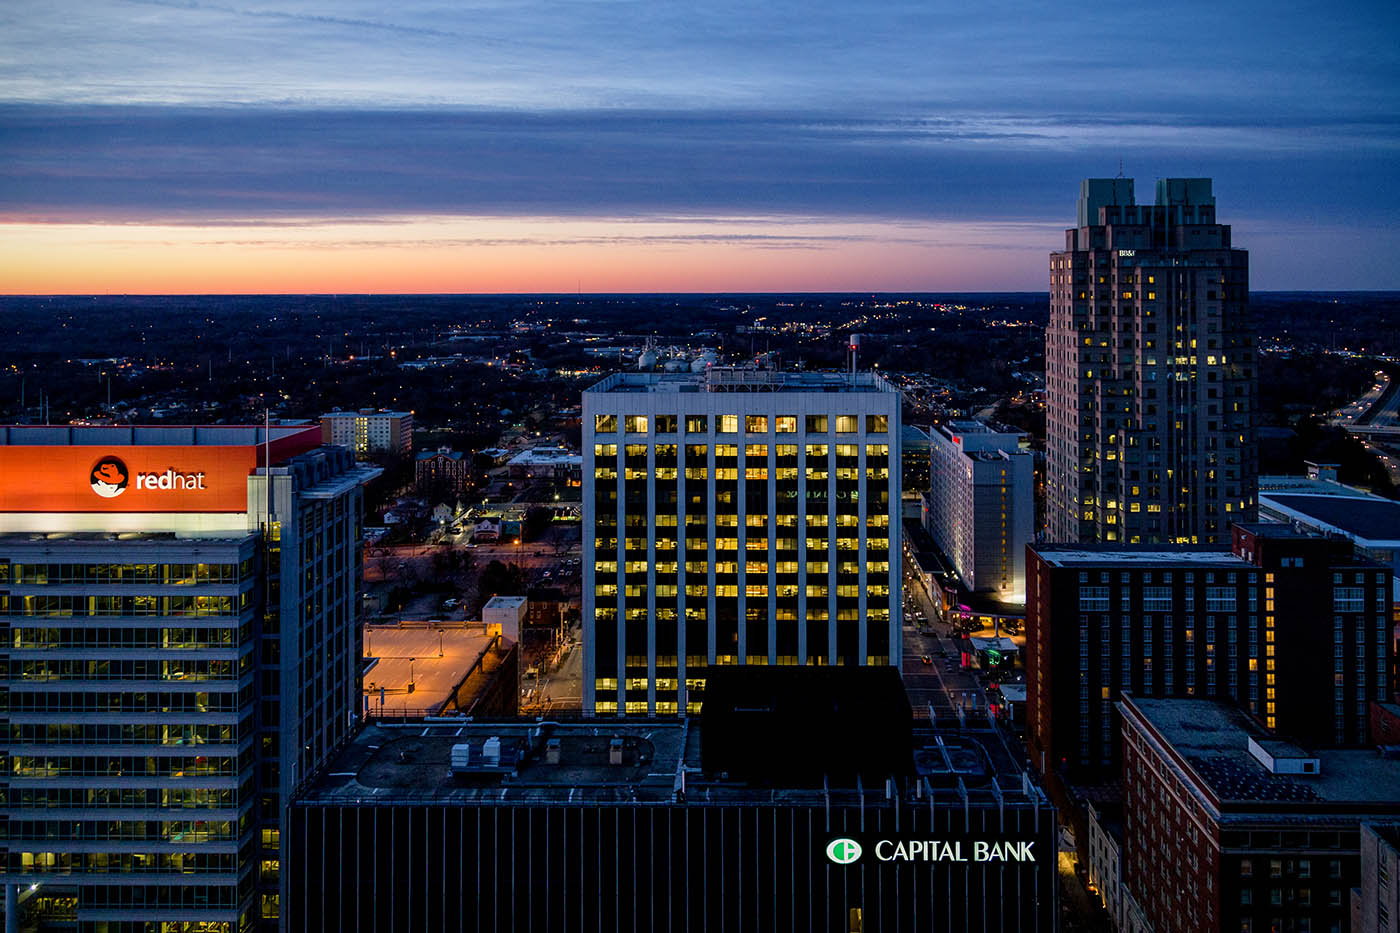 Architectural Photography: photo of Raleigh skyline at sunset